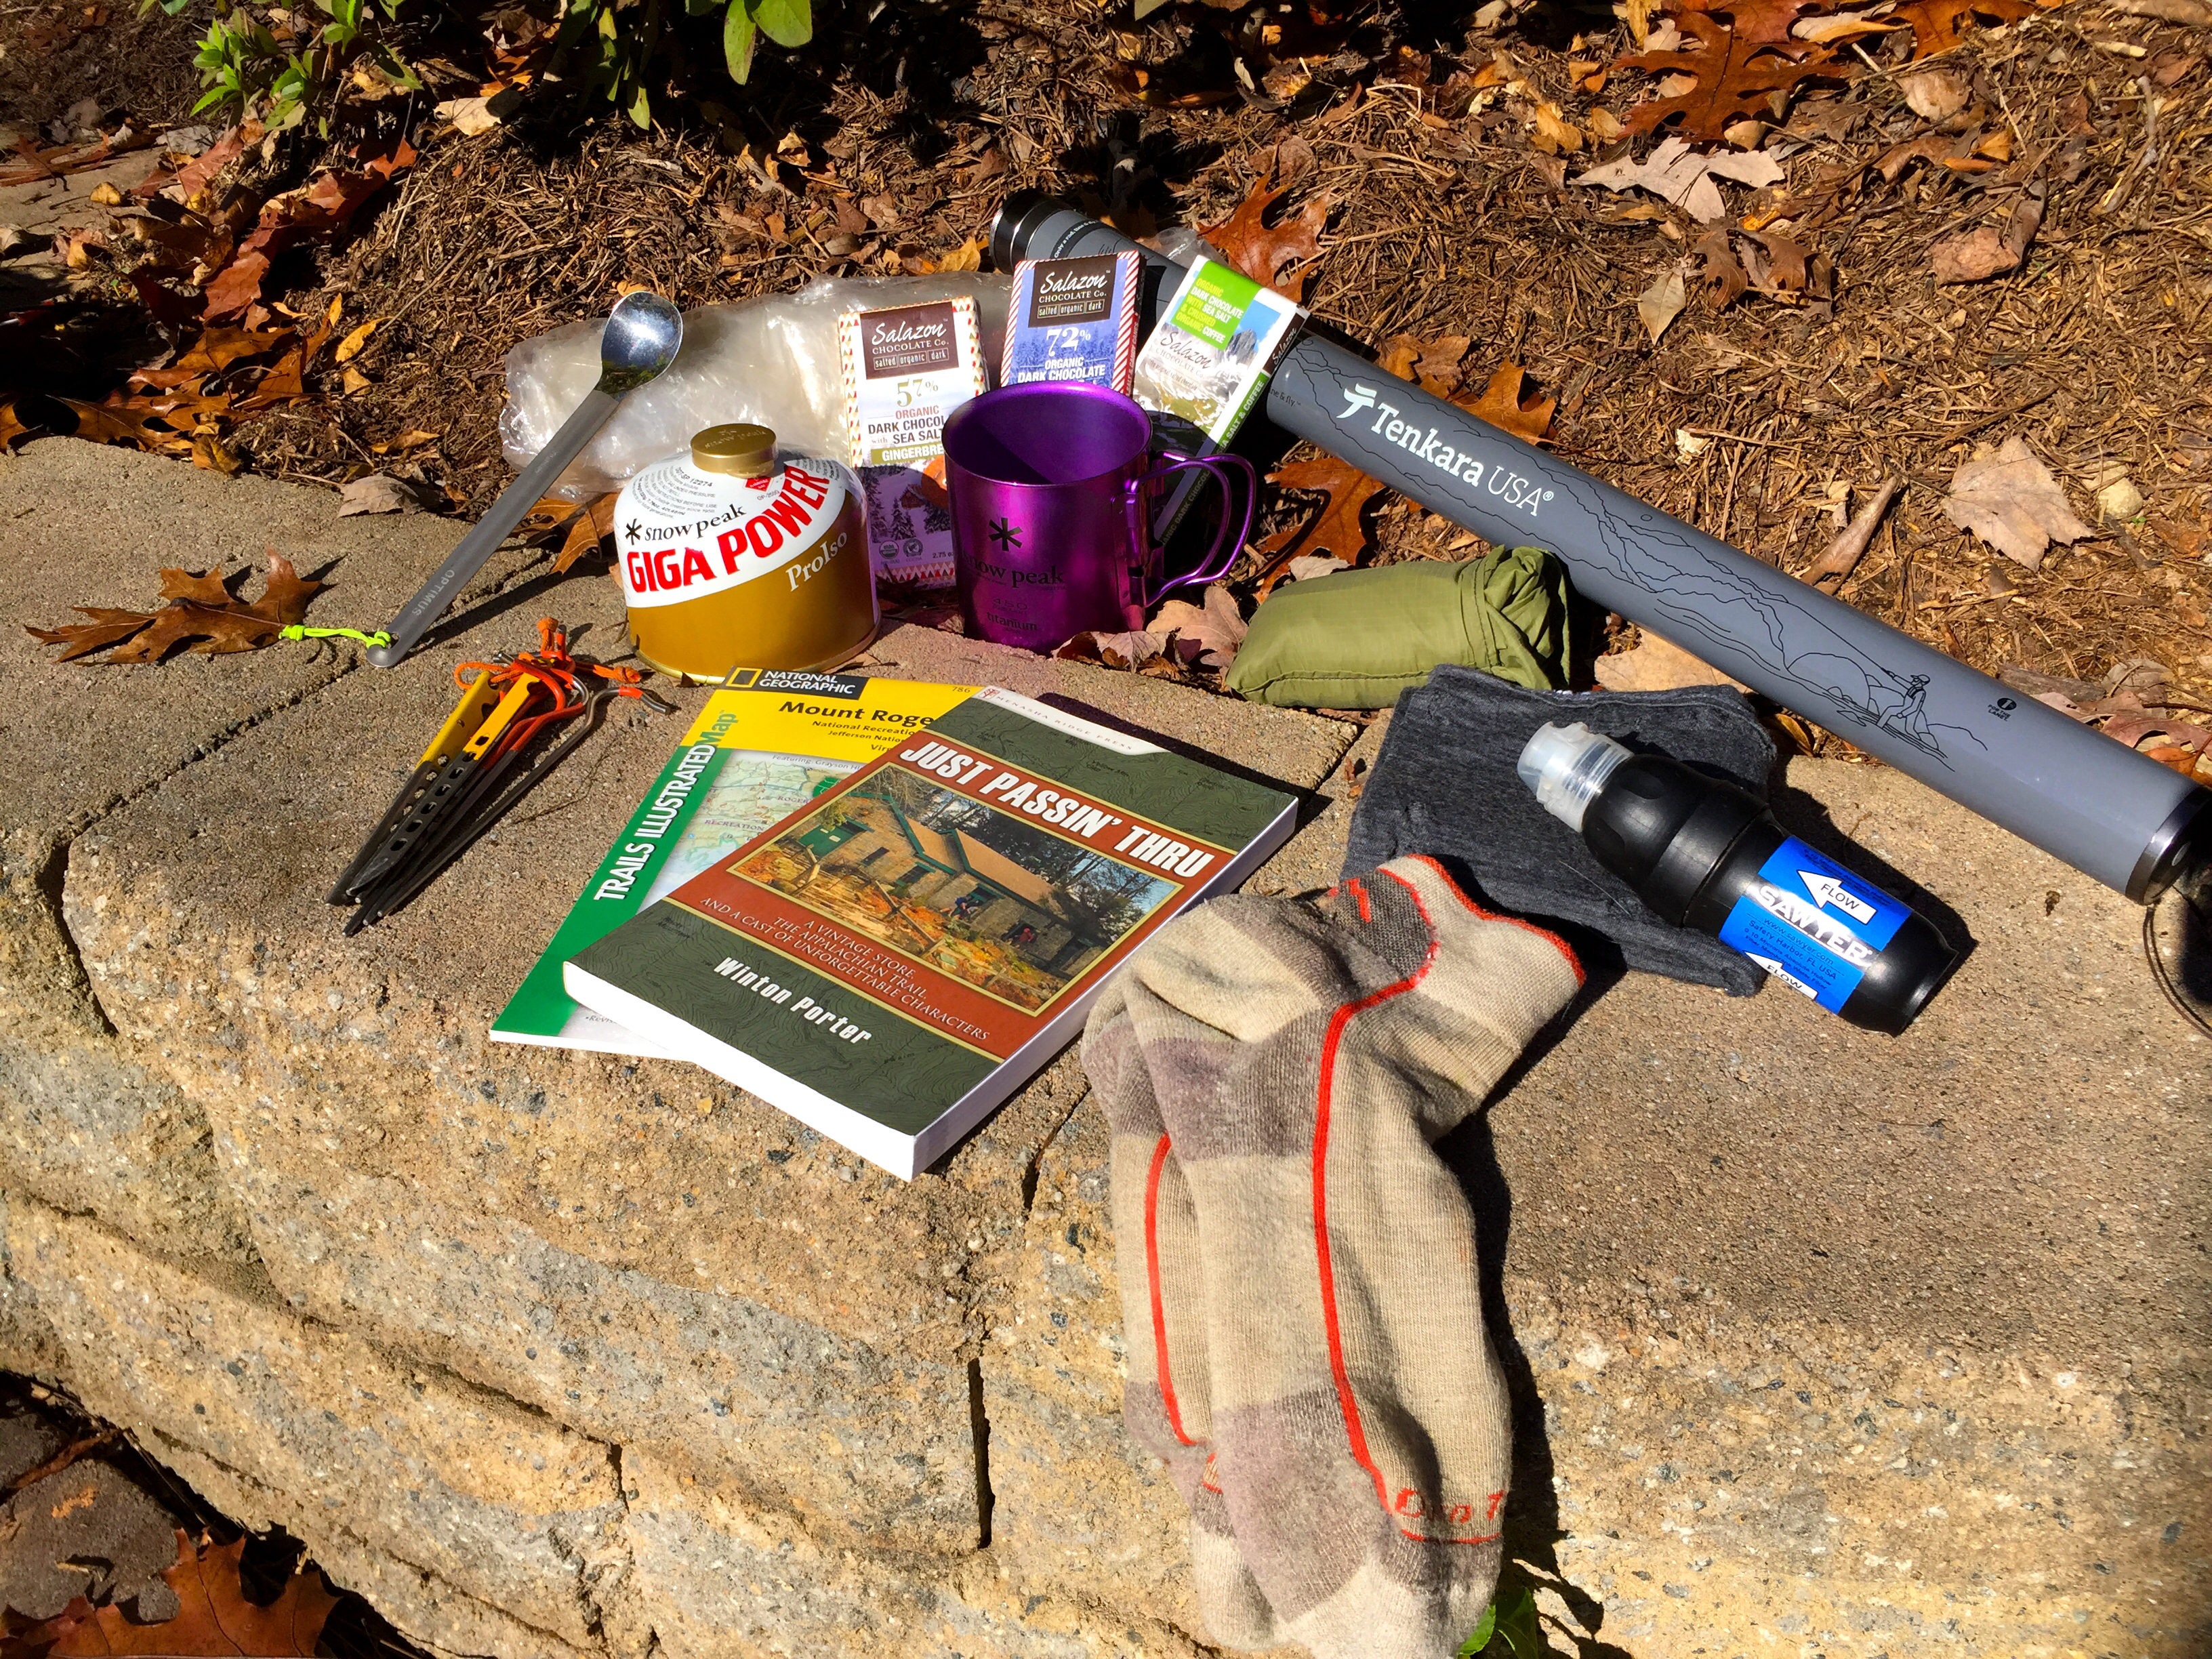 Holiday gift ideas for the backpackers